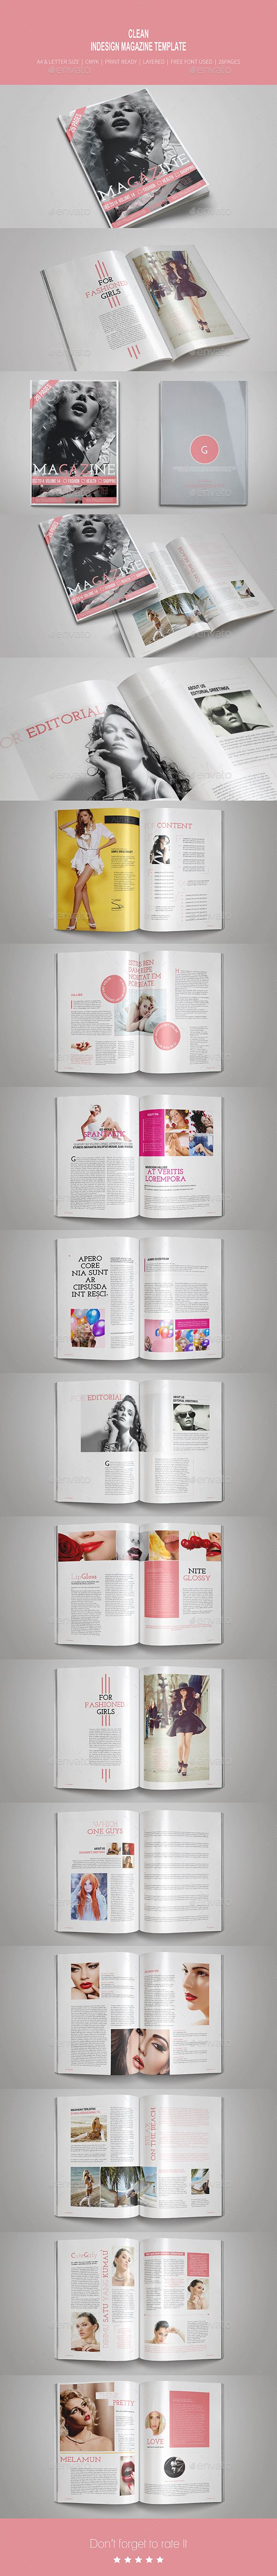 Clean InDesign Magazine Template | Revistas